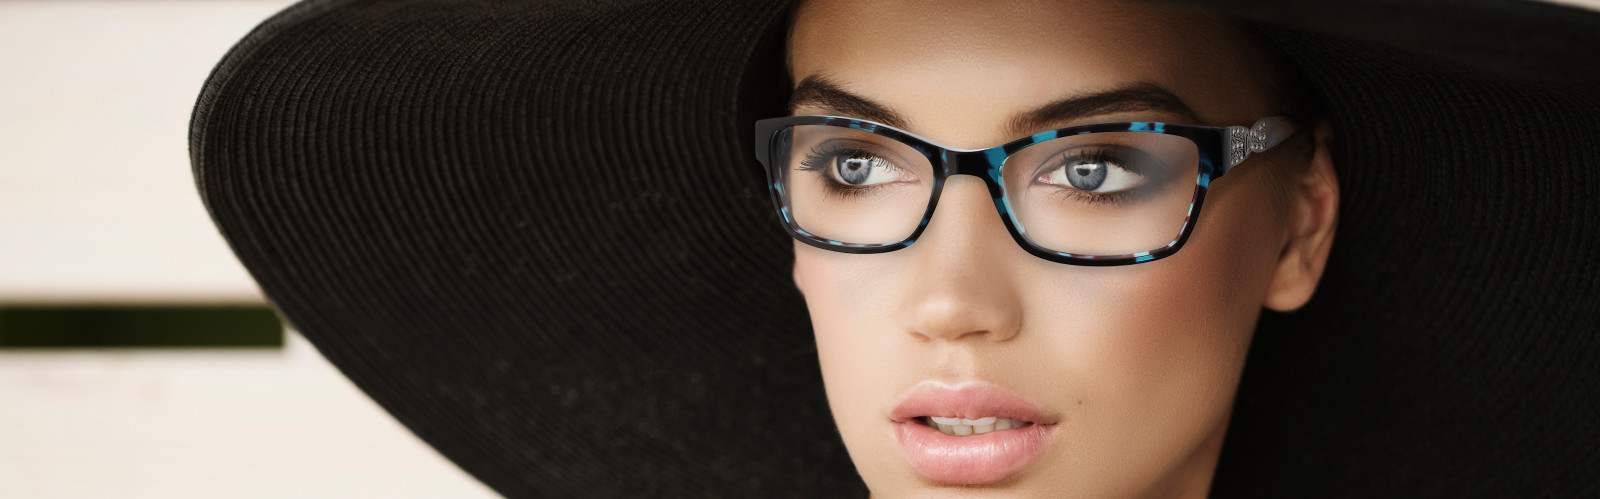 close up of woman wearing cool glasses and a big hat